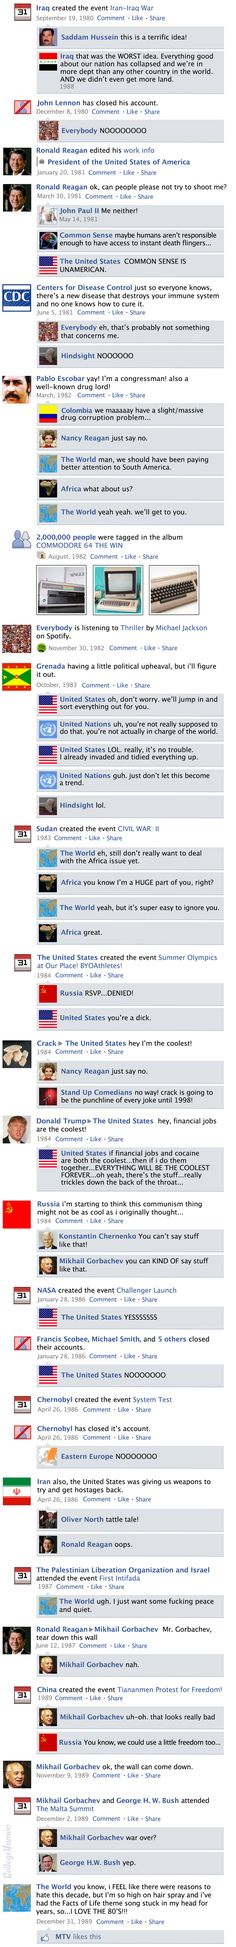 Facebook News Feed History of the World > 1980s